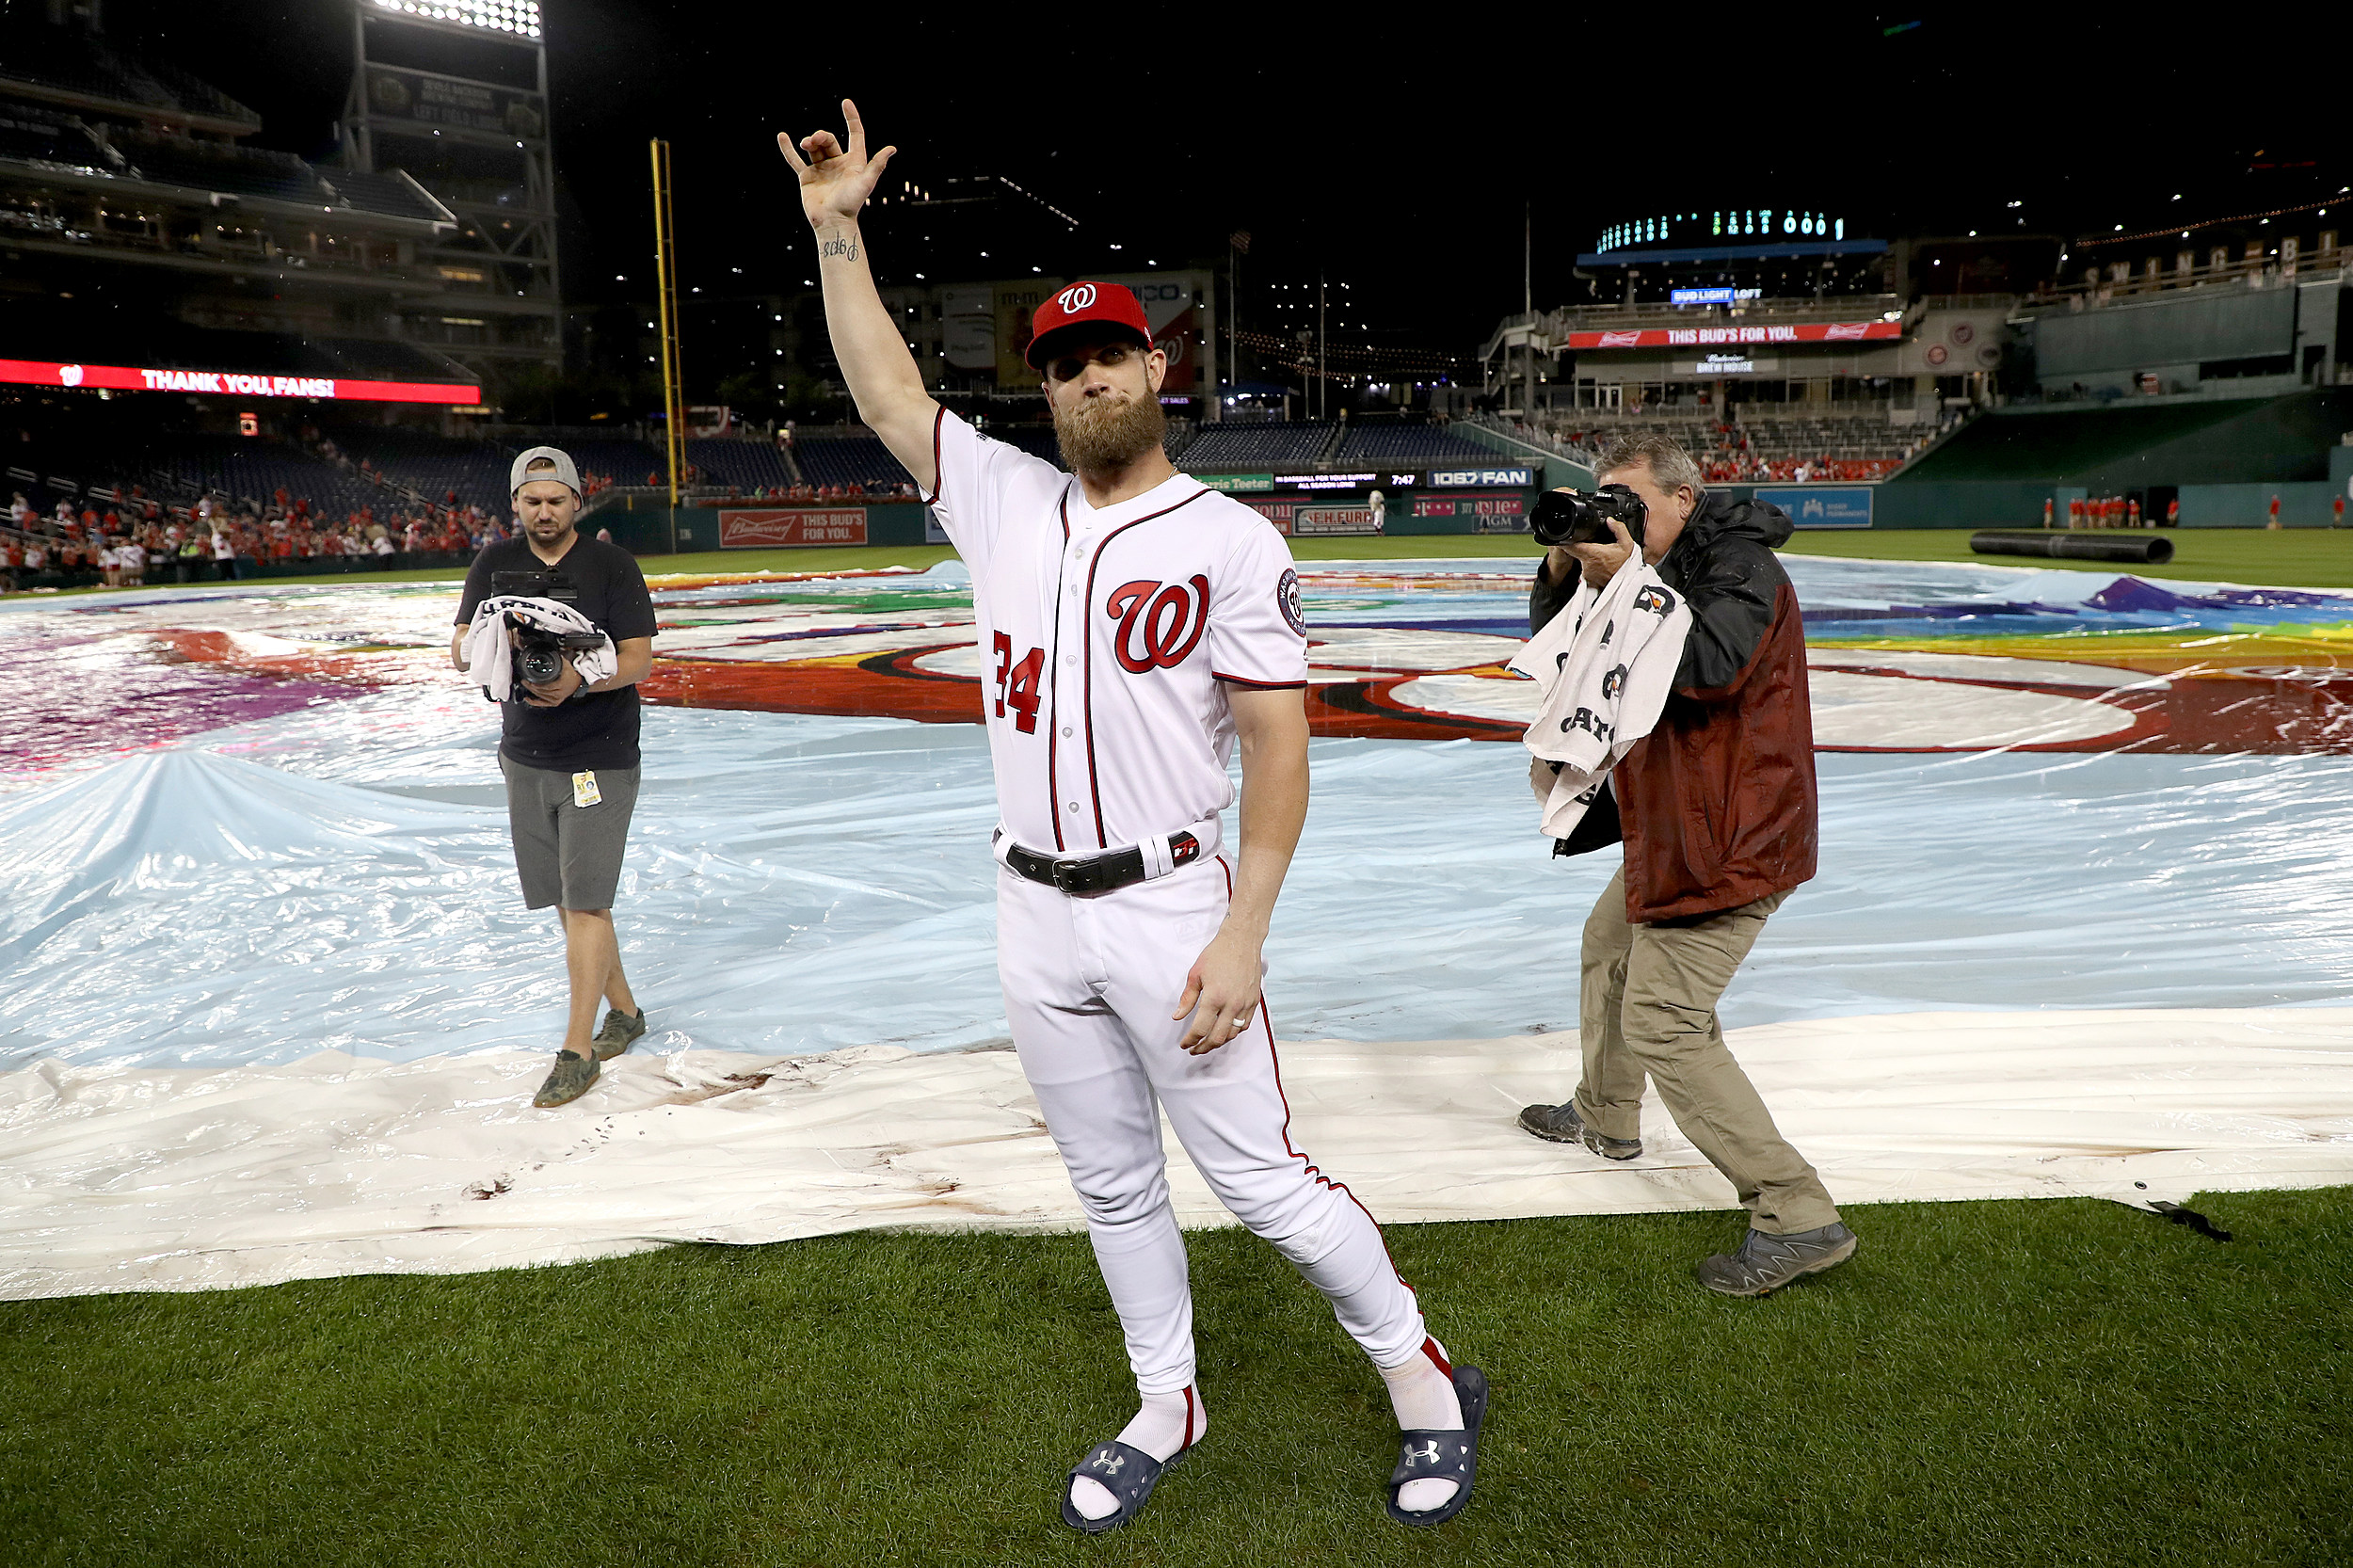 Major League Baseball hot stove: Bryce Harper meeting with Giants, report says